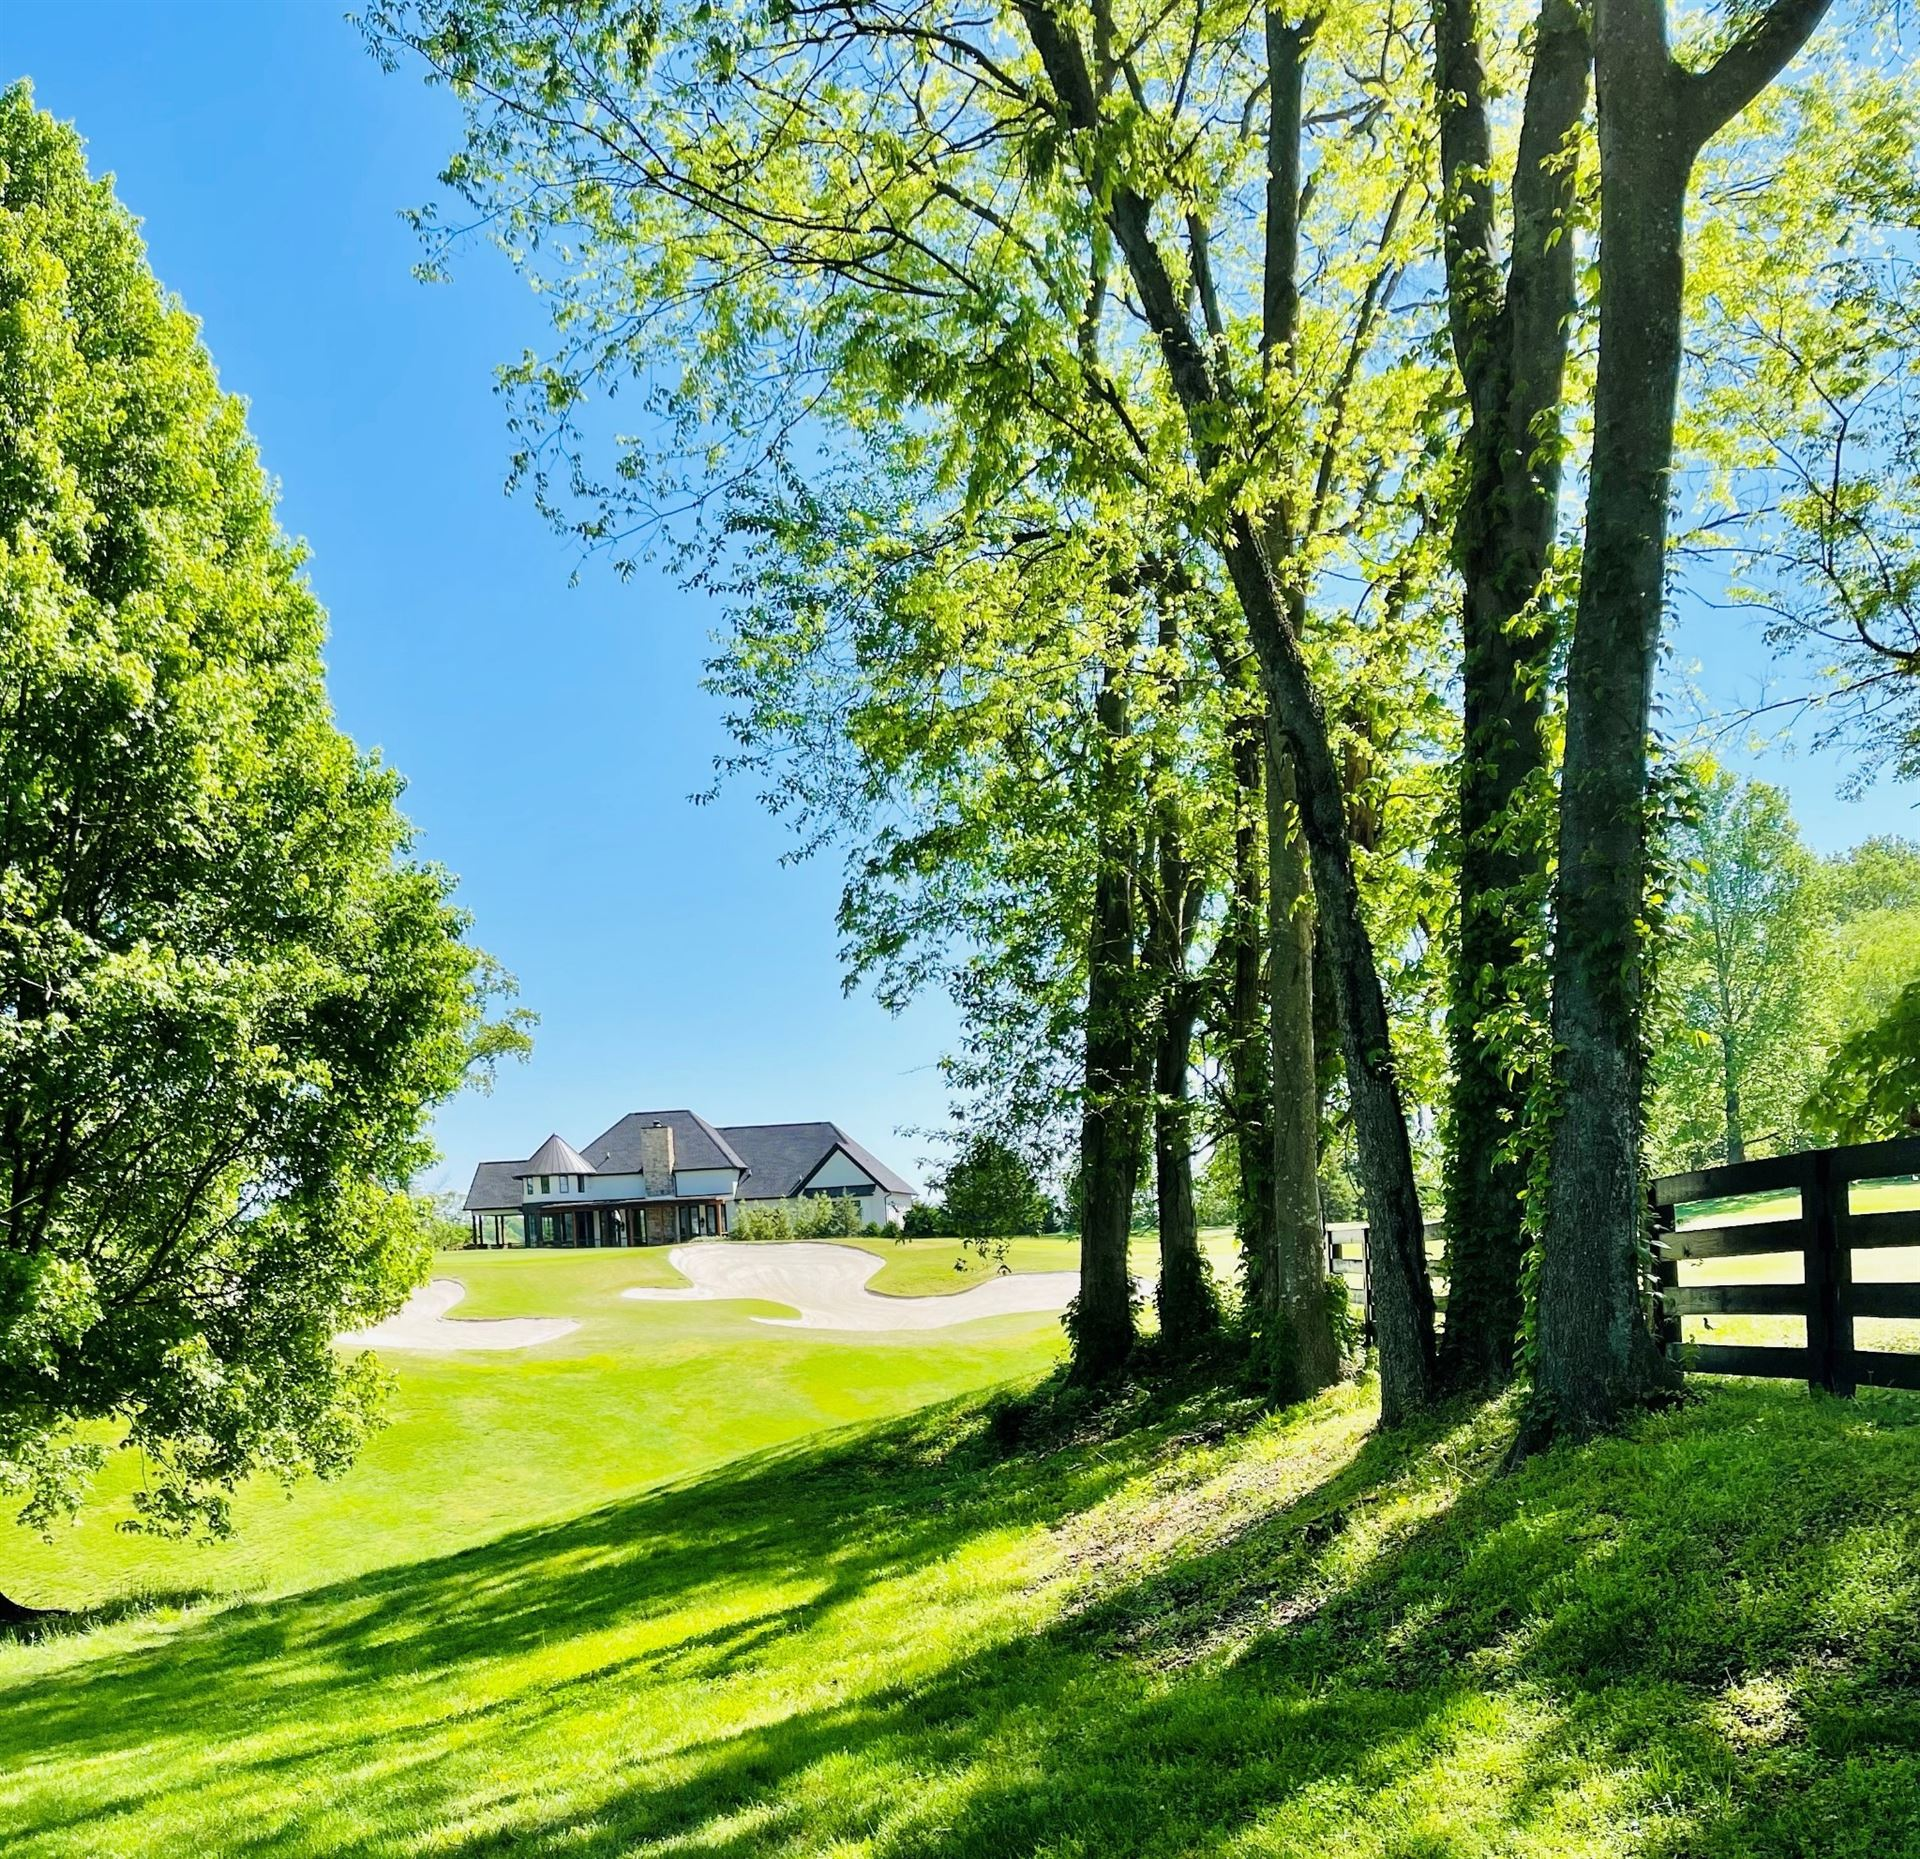 Photo of 246 Governors Way, Brentwood, TN 37027 (MLS # 2264415)